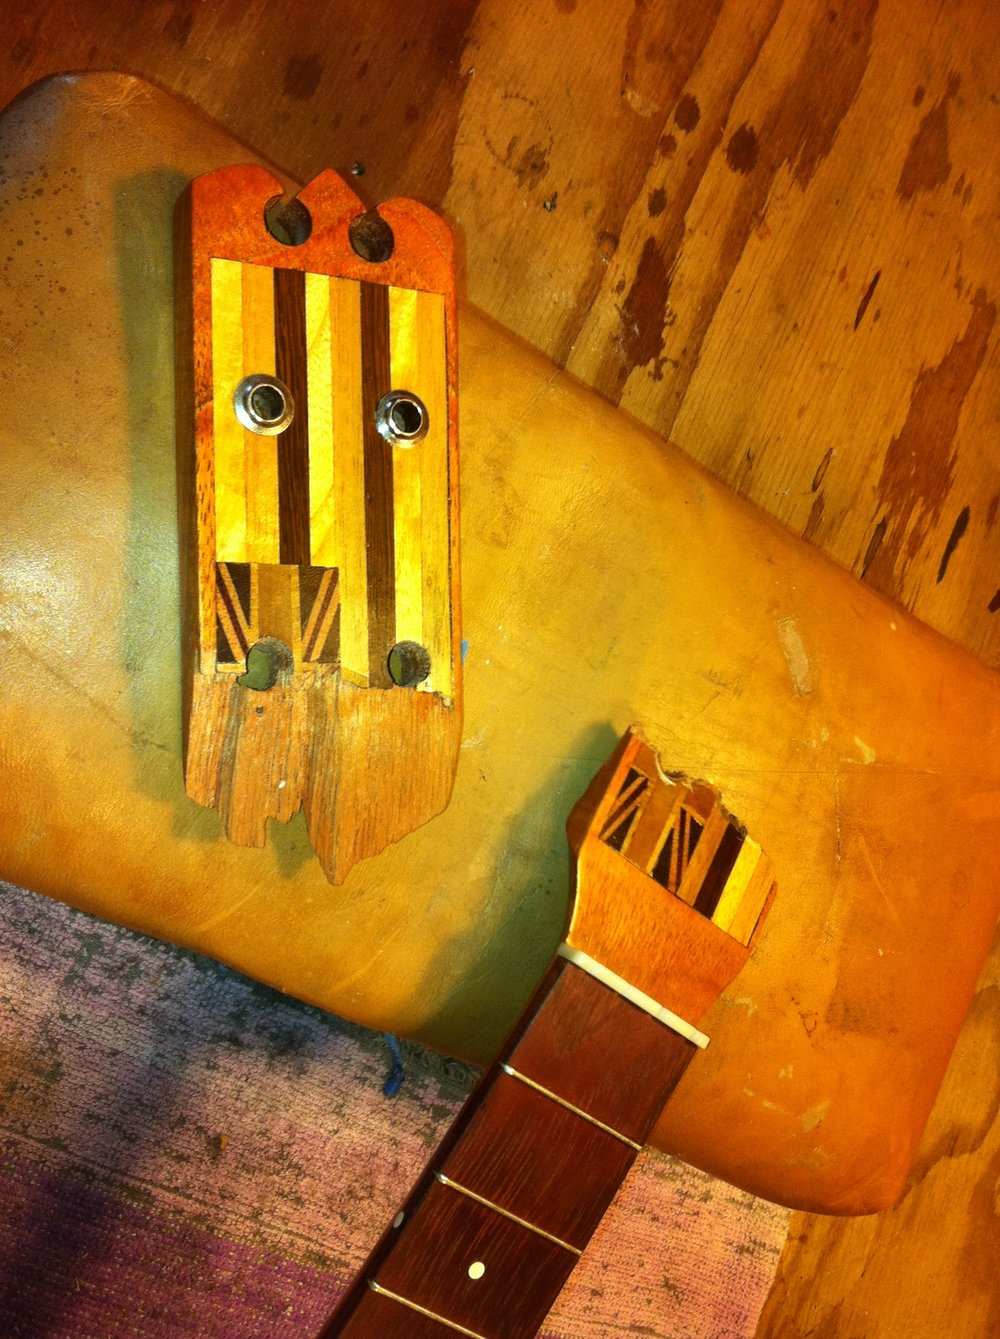 A local neighborhood lutherie hero of mine, Les Reitfors. Wonderfully personal, handmade instruments with island pride.